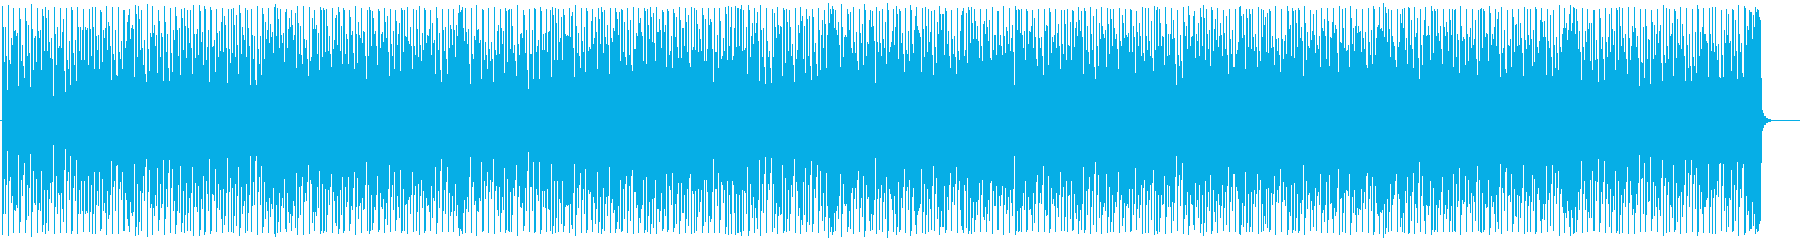 Easy melody with a near-future world view's reproduced waveform